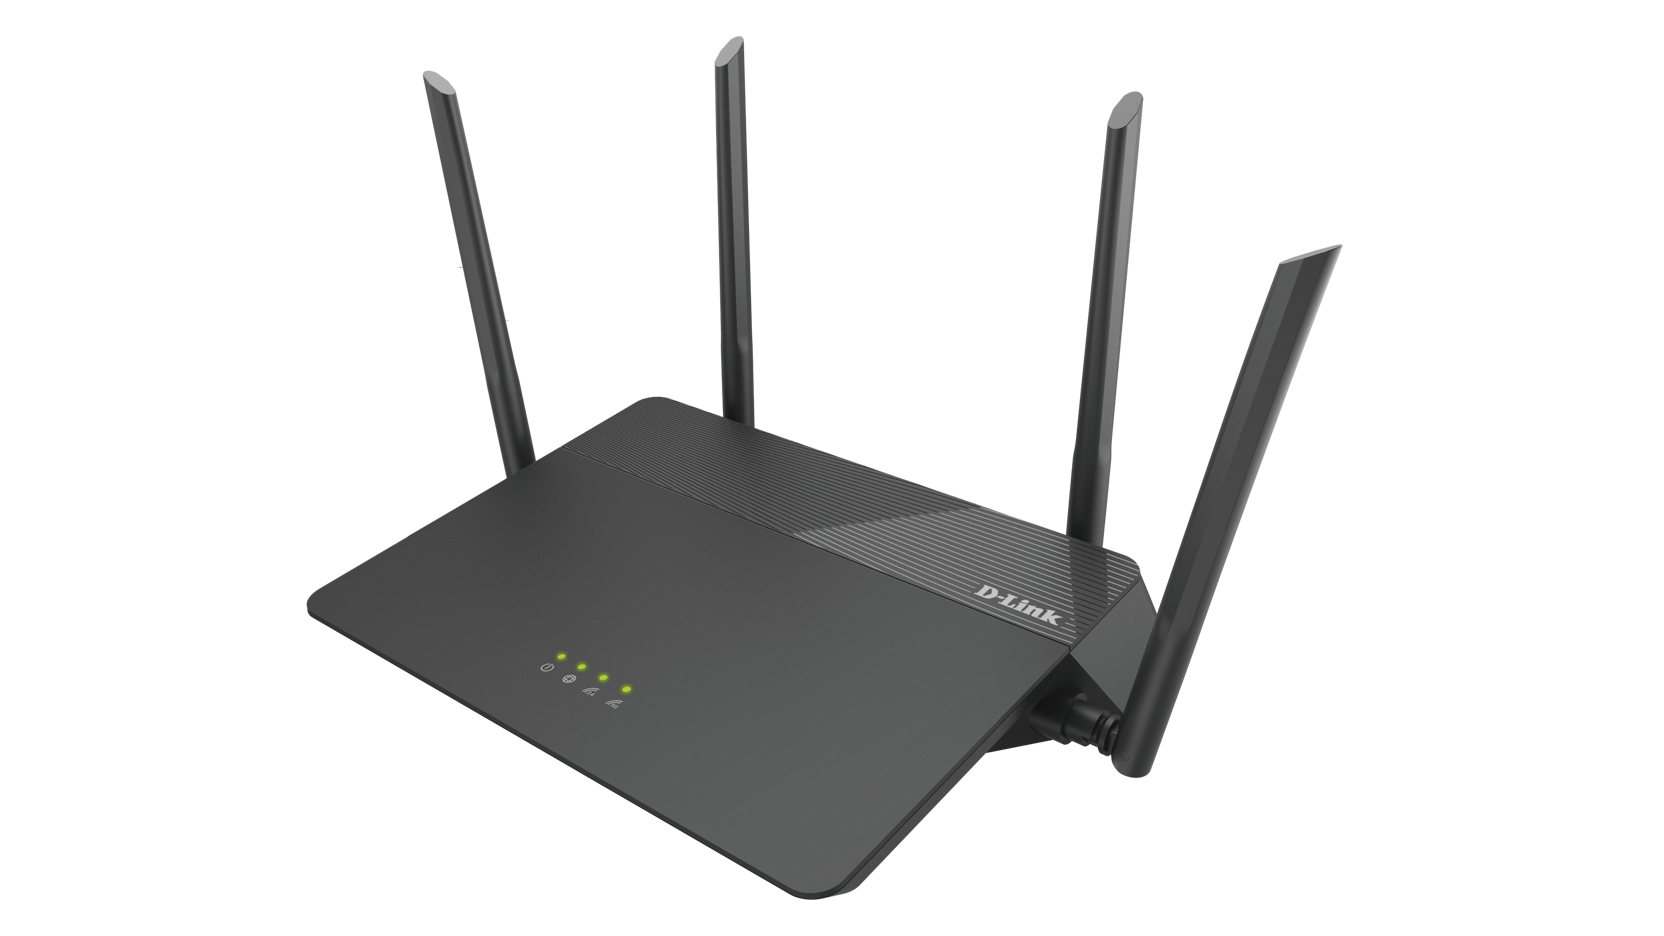 Dlink AC1900 MU-MIMO router